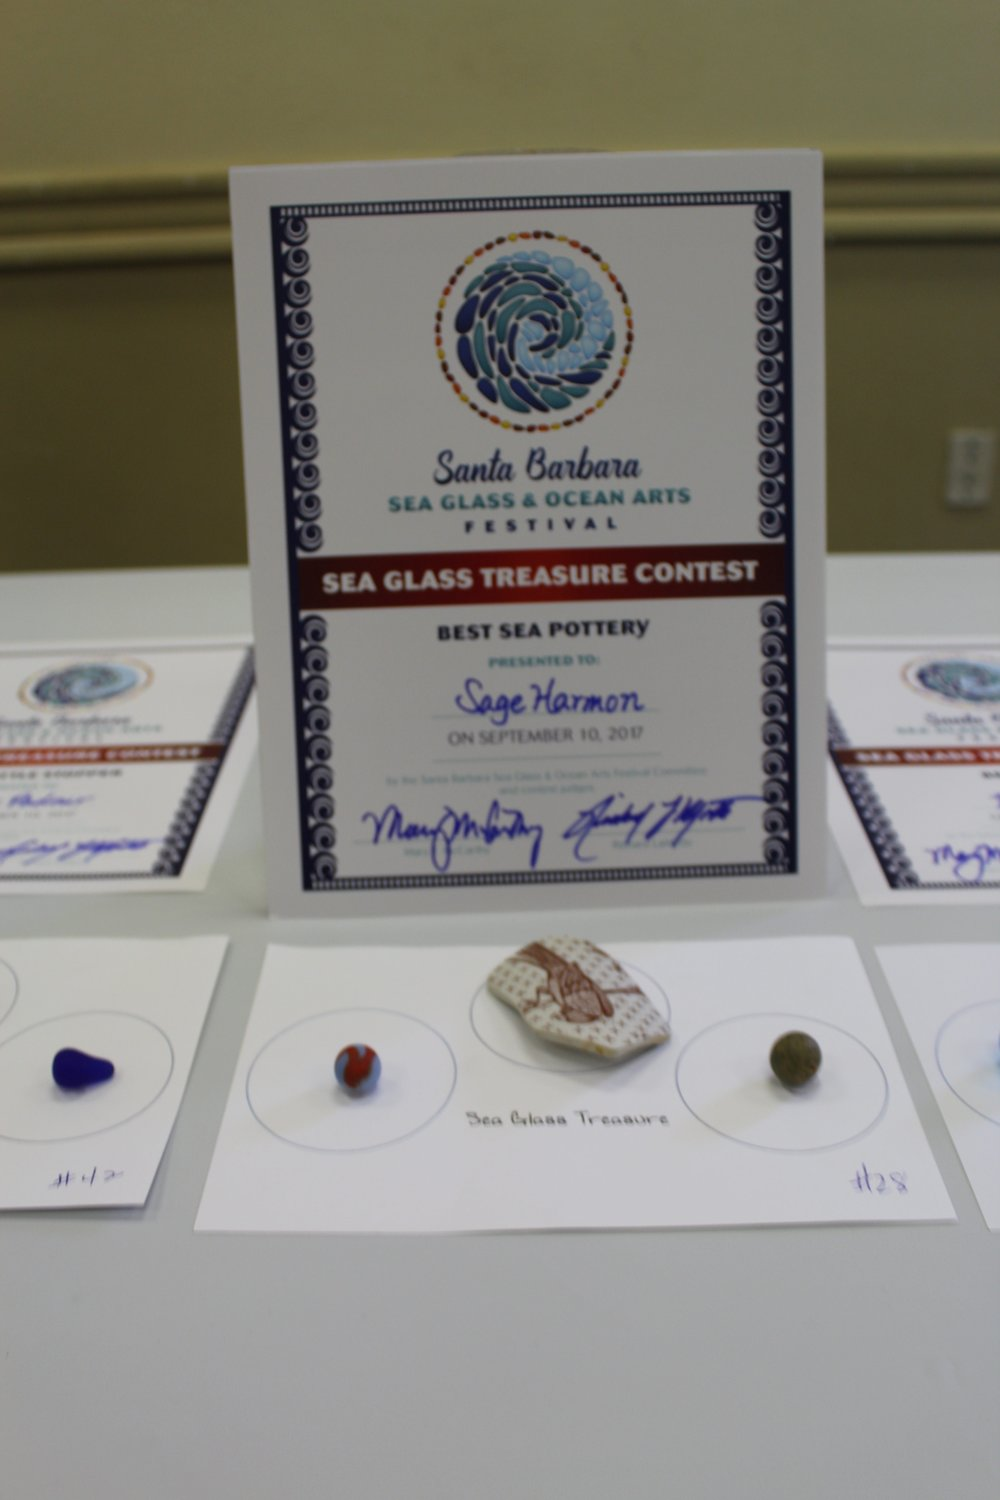 Best Sea Pottery: Sage Harmon